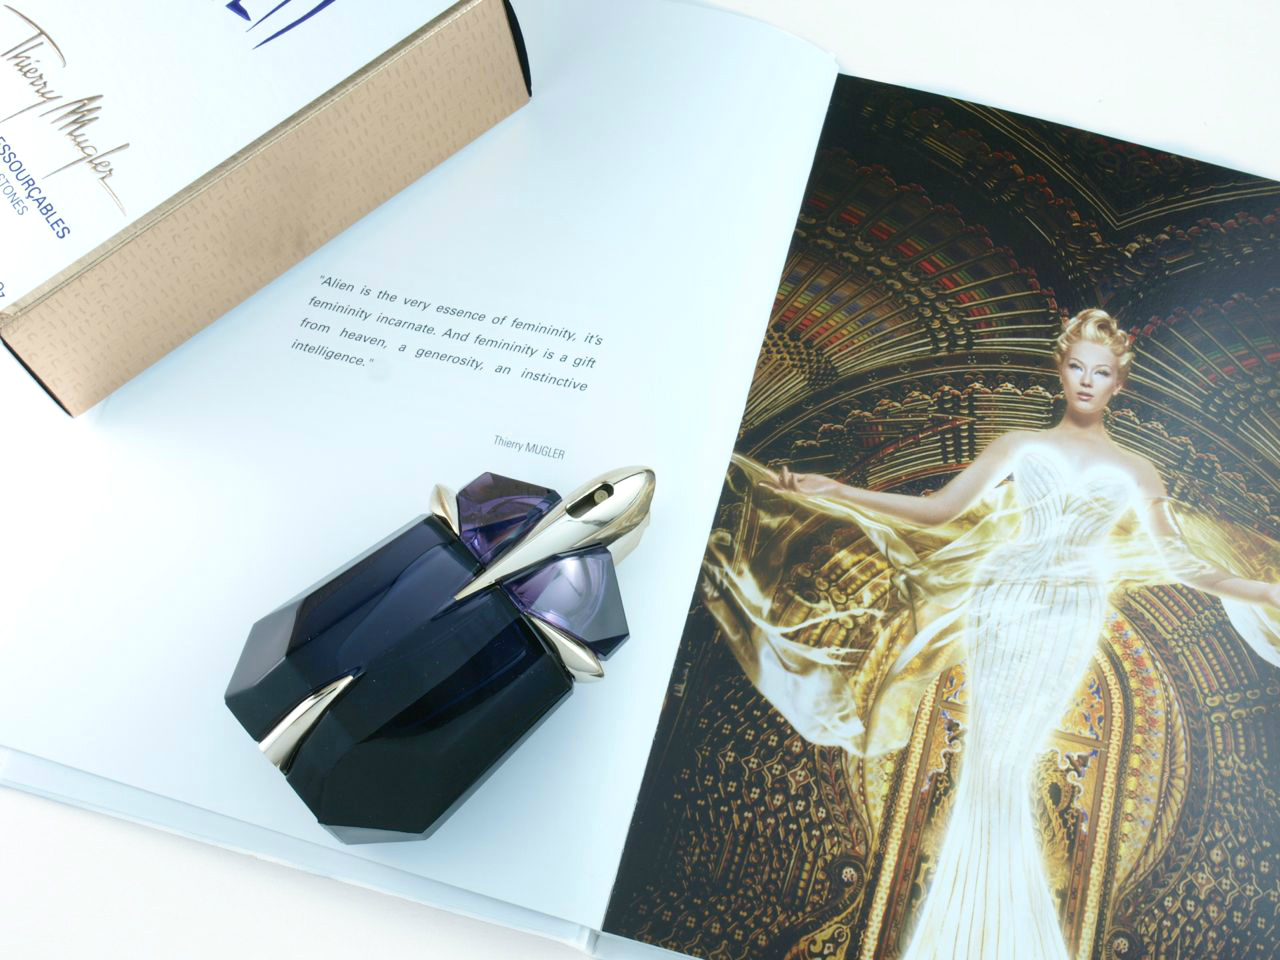 Alien Thierry Mugler Eau de Parfum: Review